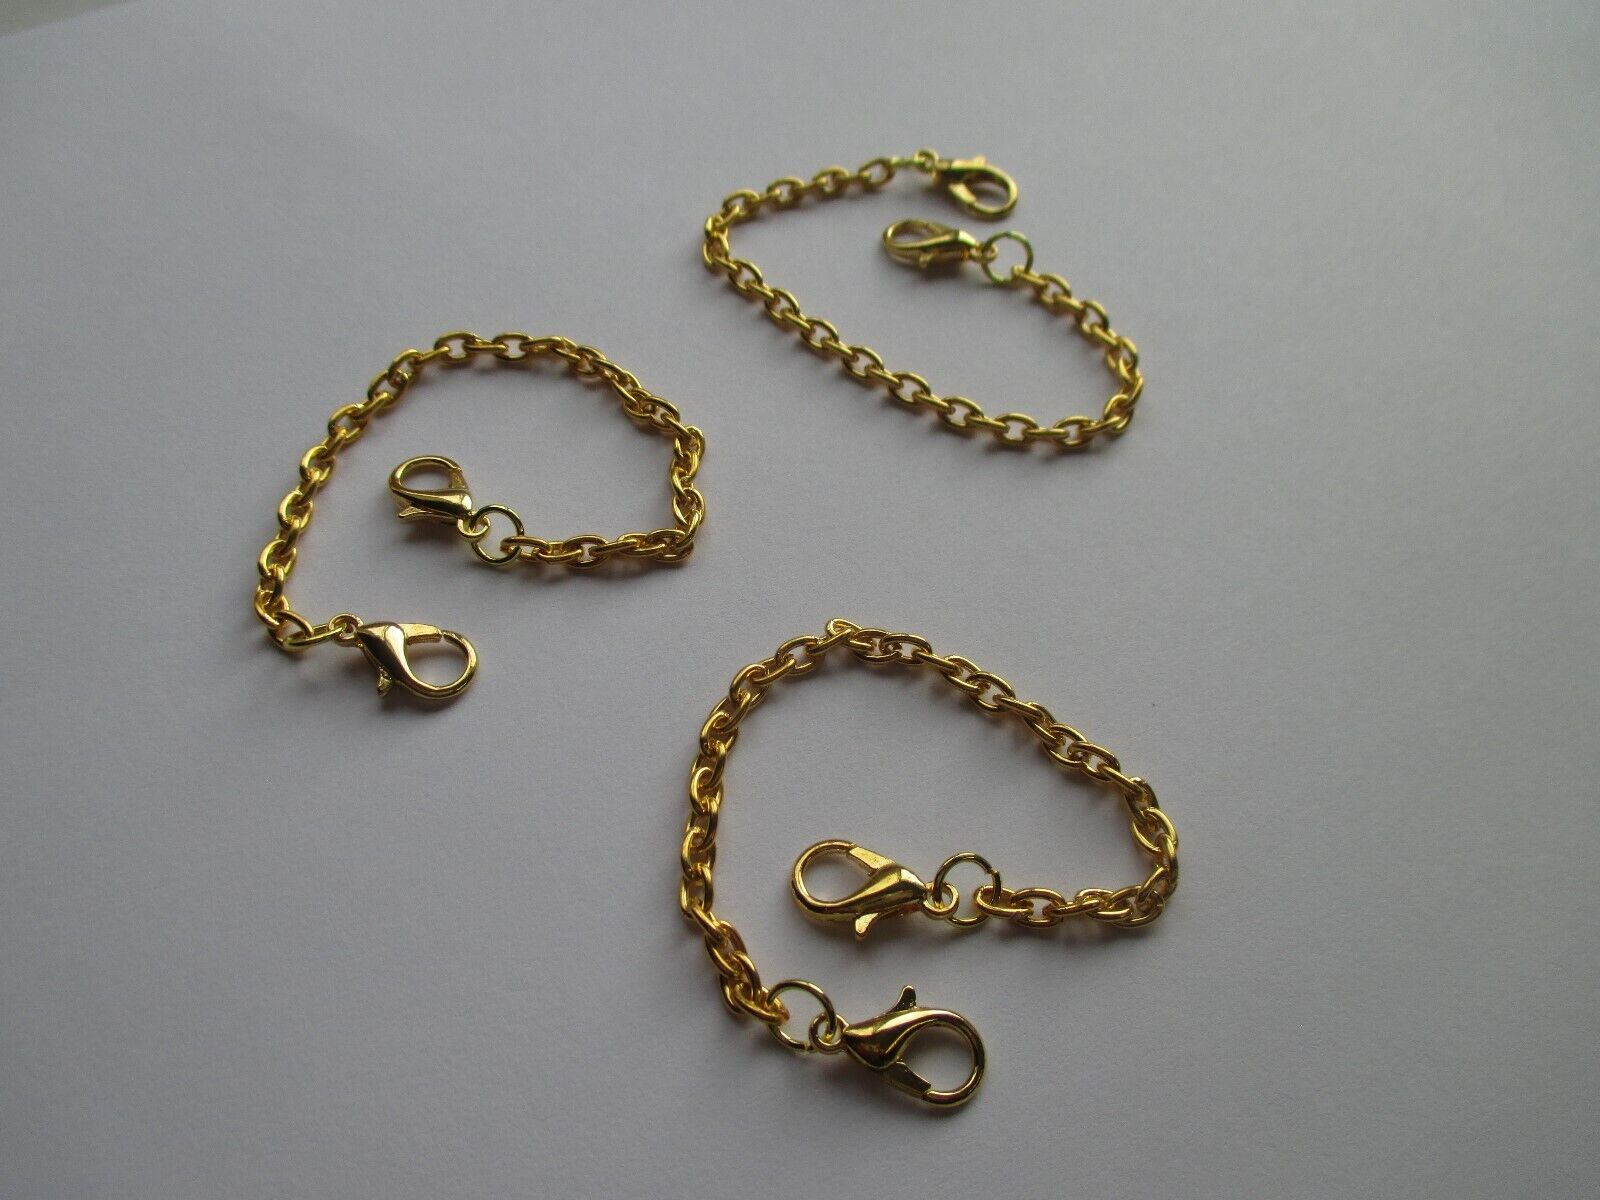 Jewellery - UK Jewellery 3 Pieces Gold Extension/extender Necklace Pendant Bracelet Chain